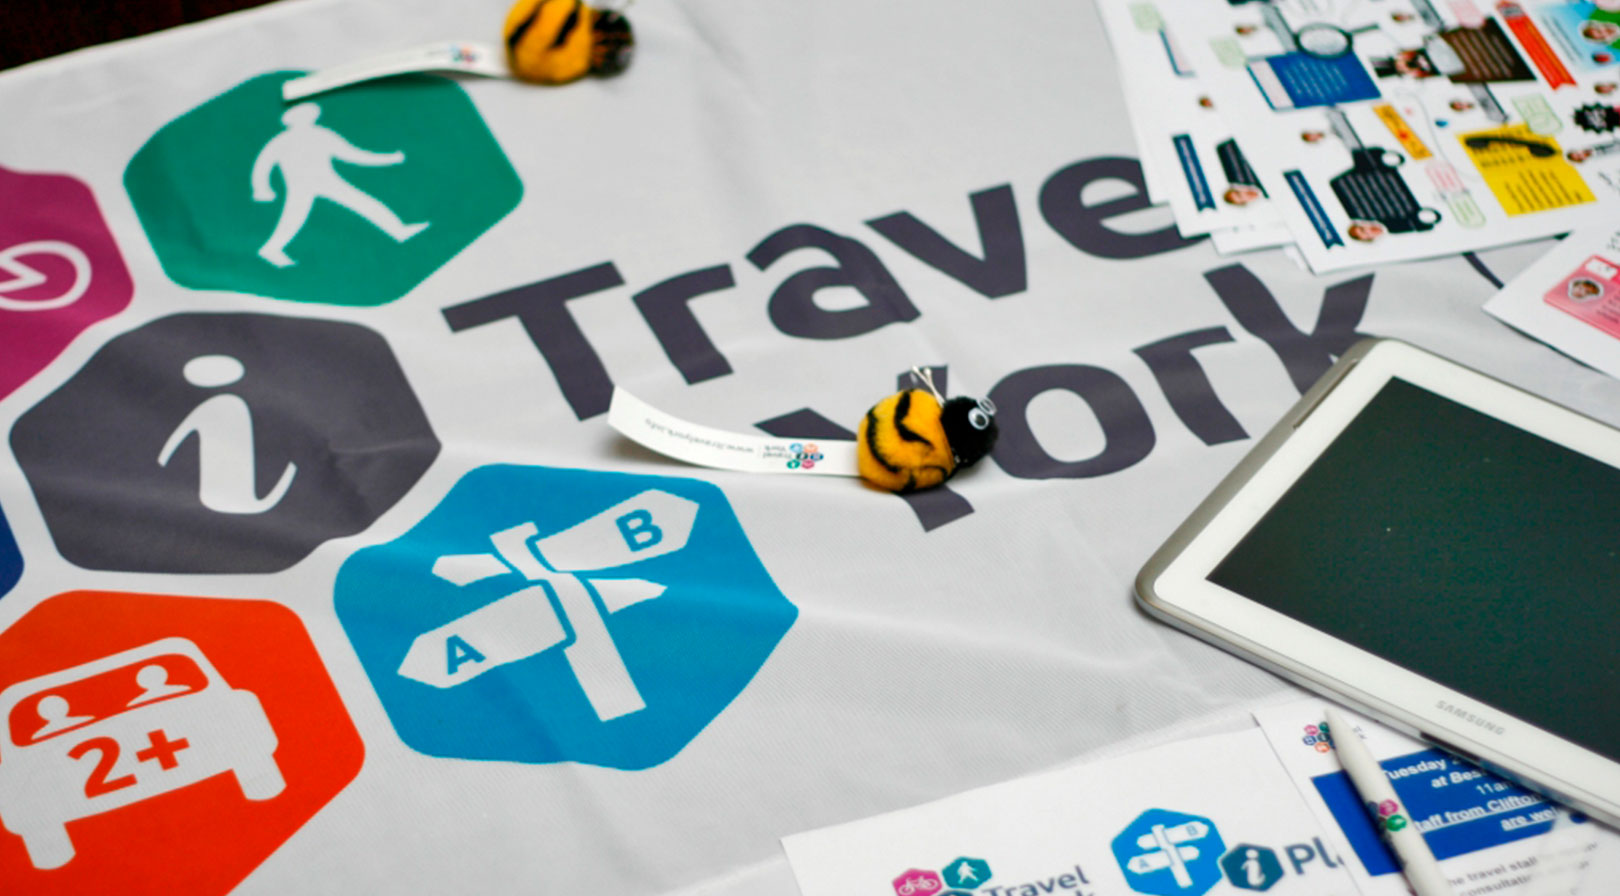 Personal Travel Planning: i-Travel York Programme